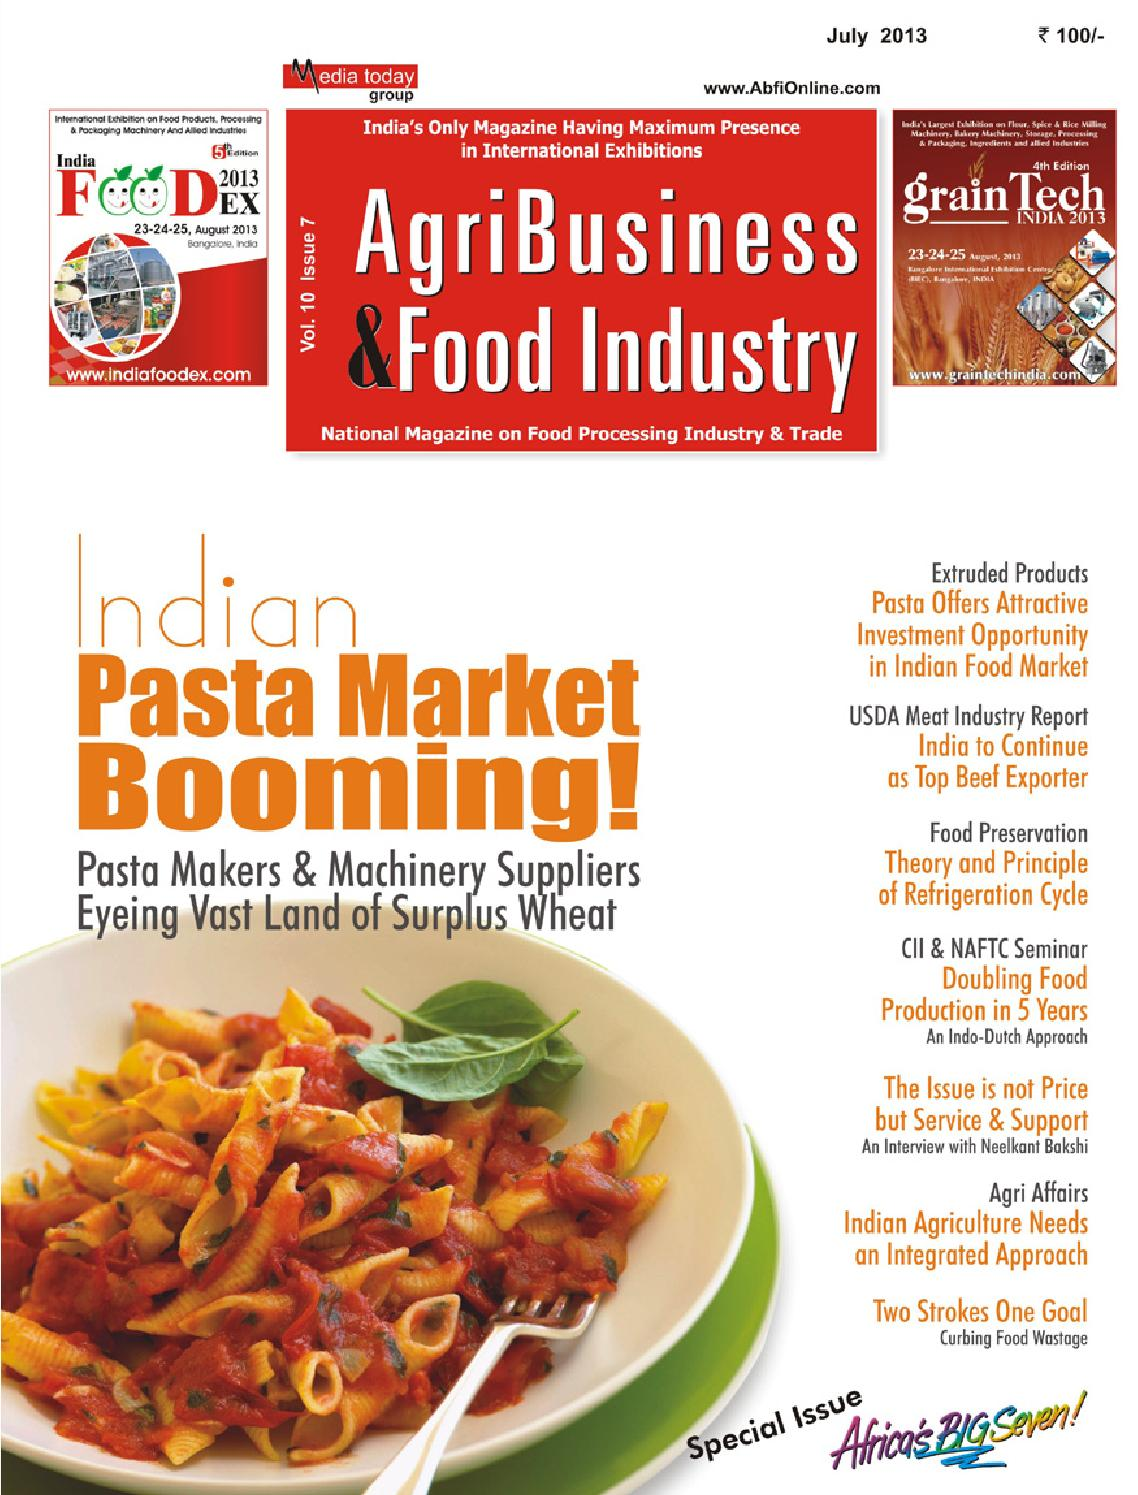 AgriBusiness & Food Industry- July 2013 by Media Today Pvt